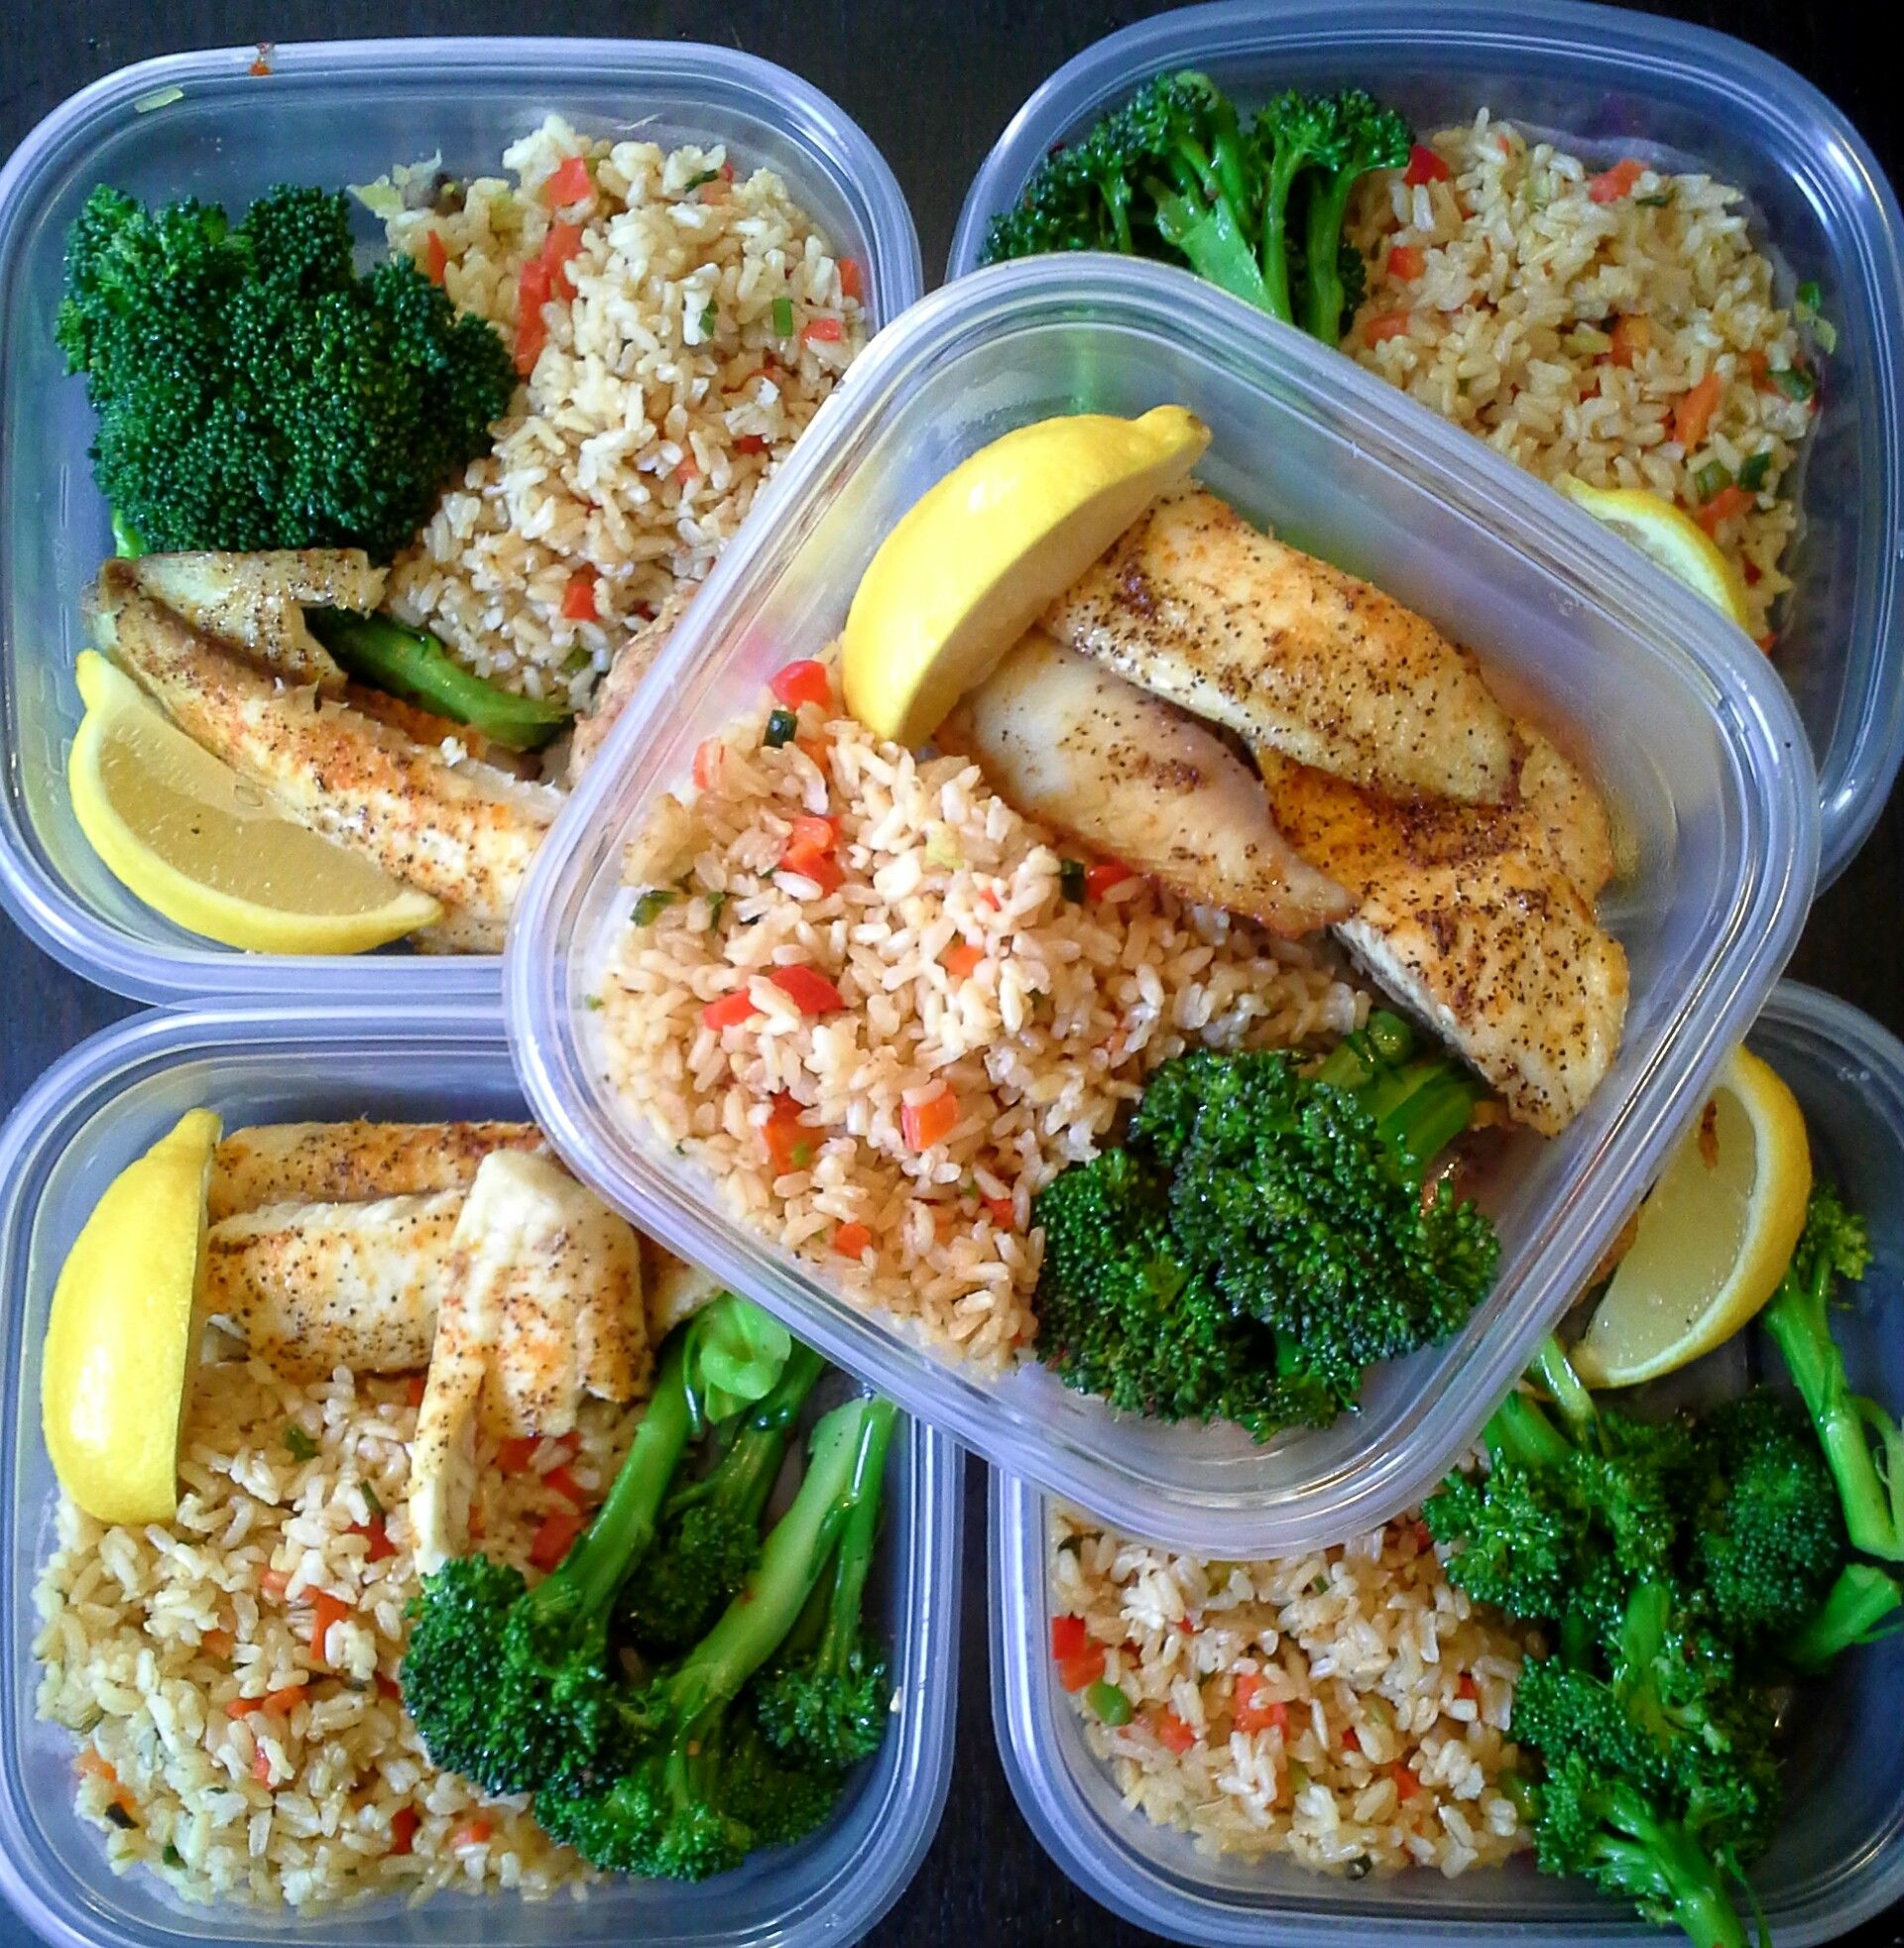 Simple And Colorful Meal Prep! Baked, Lemon Tilapia With Steamed Broccoli  And Brown Rice